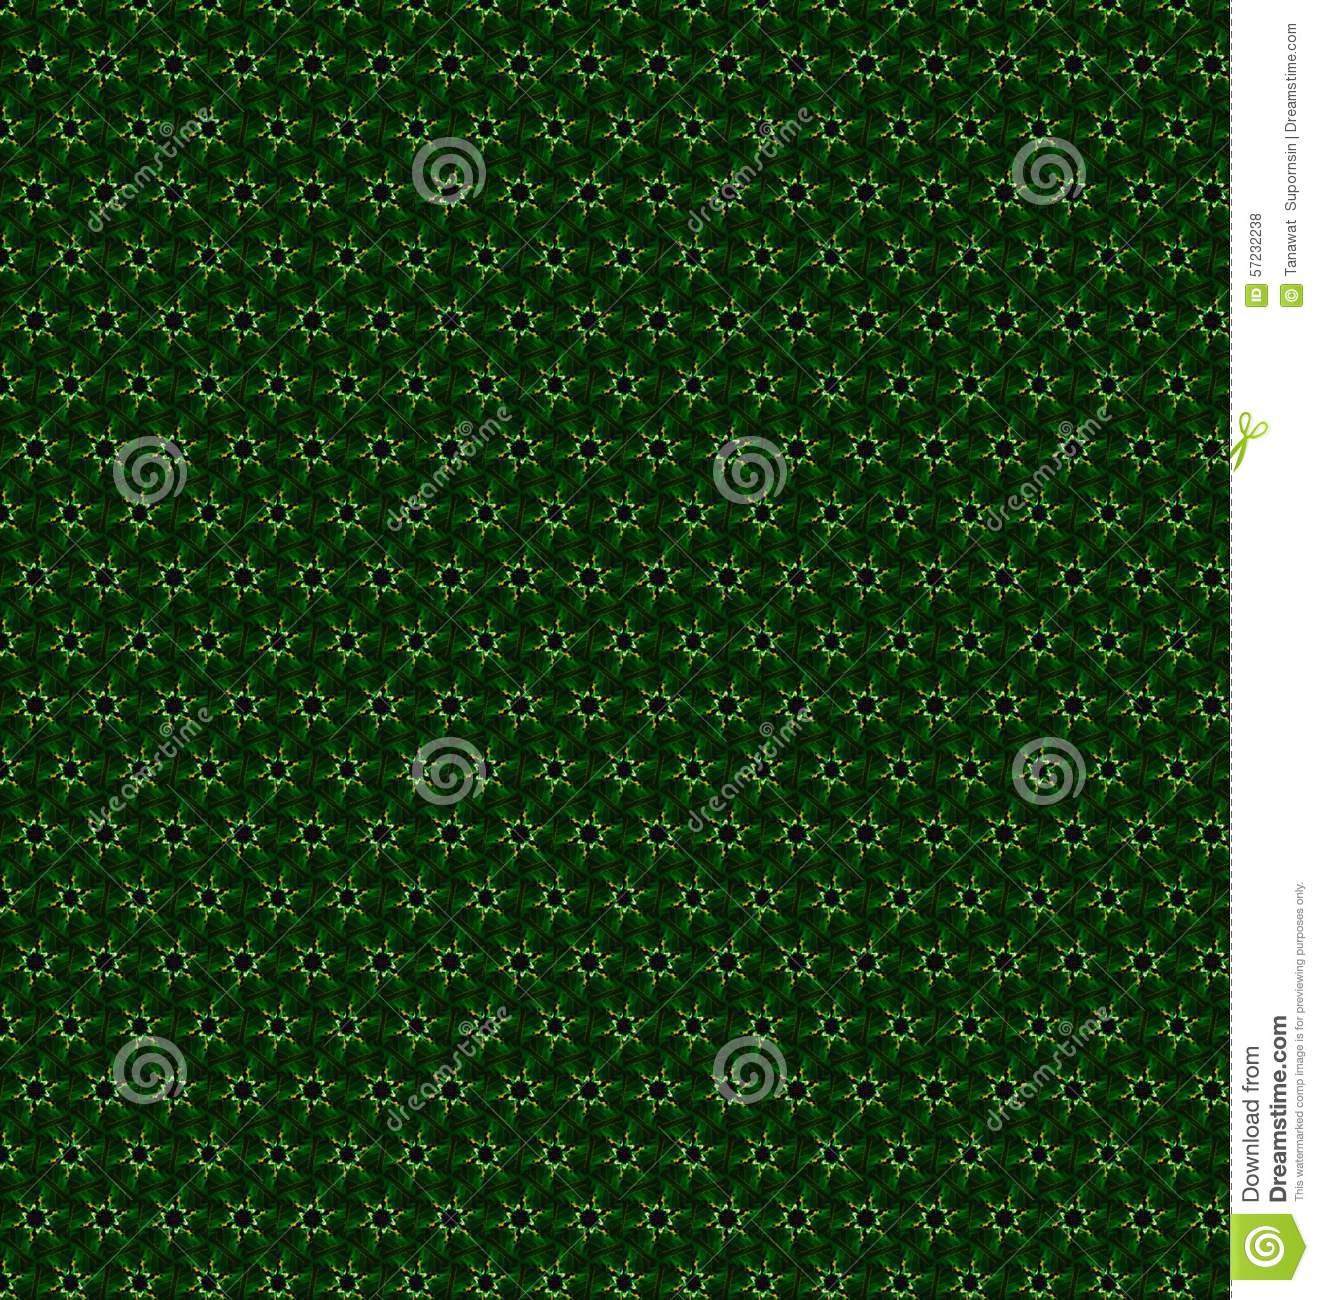 Abstract Green And White Color Pattern Wallpaper. Stock